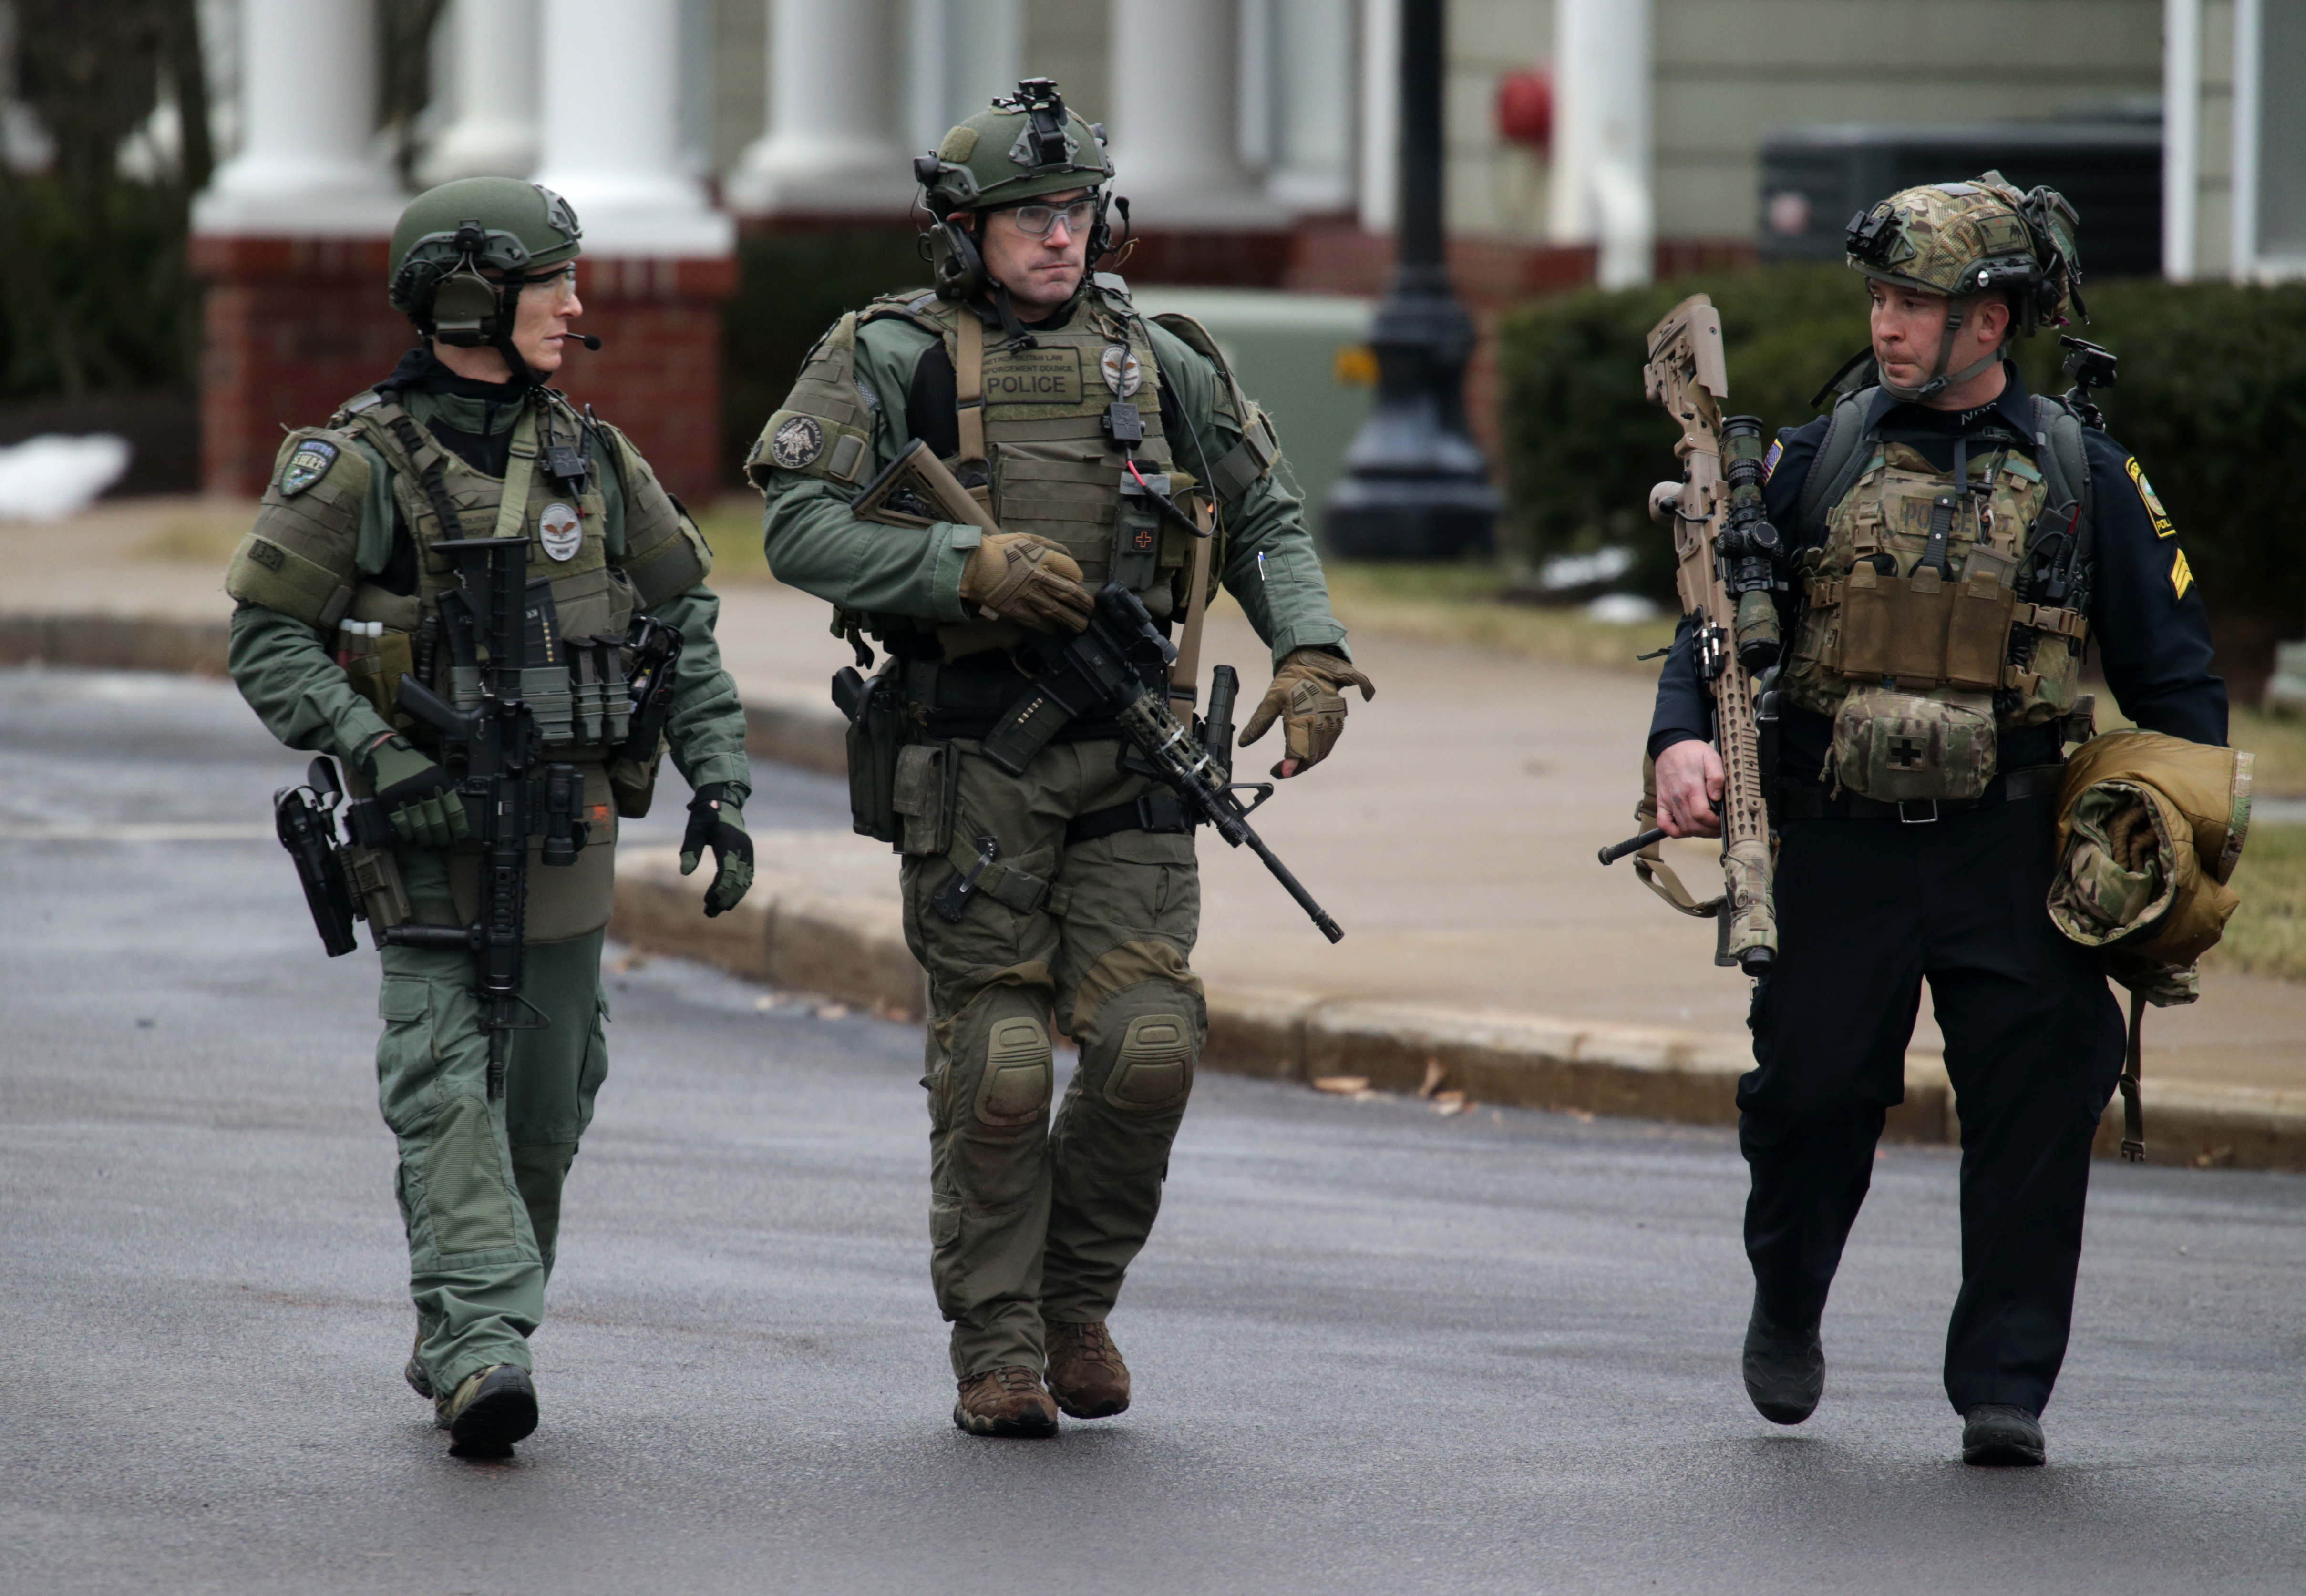 Hingham Police Take Armed Man Barricaded In Home Into Custody The Boston Globe